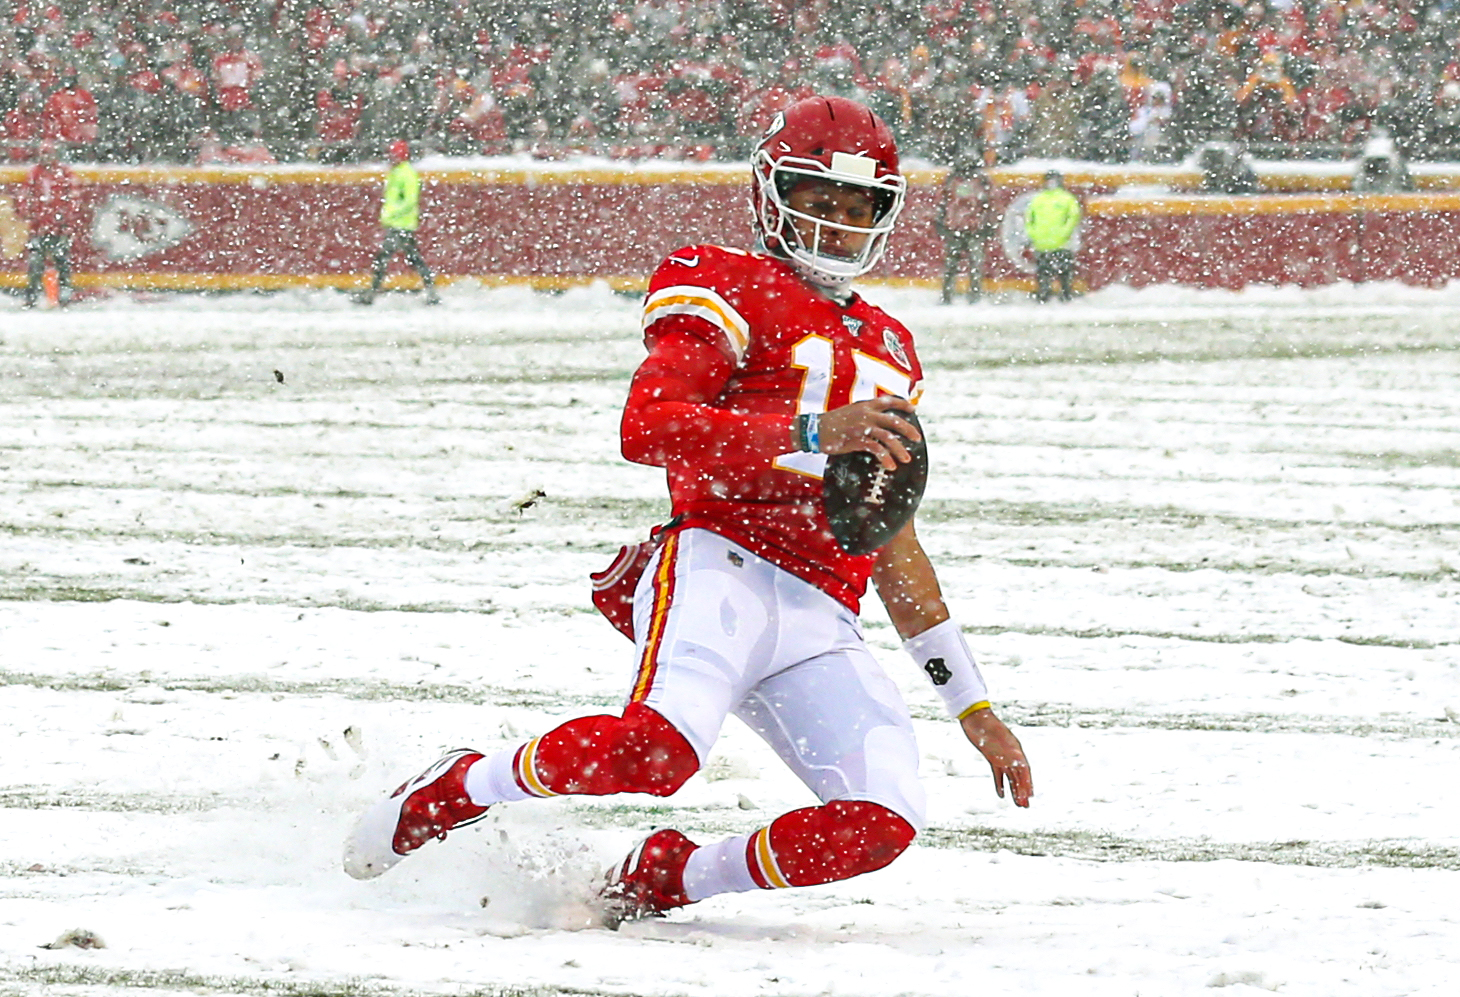 Kansas City Chiefs quarterback Patrick Mahomes slides against the Denver Broncos during the first half at Arrowhead Stadium.